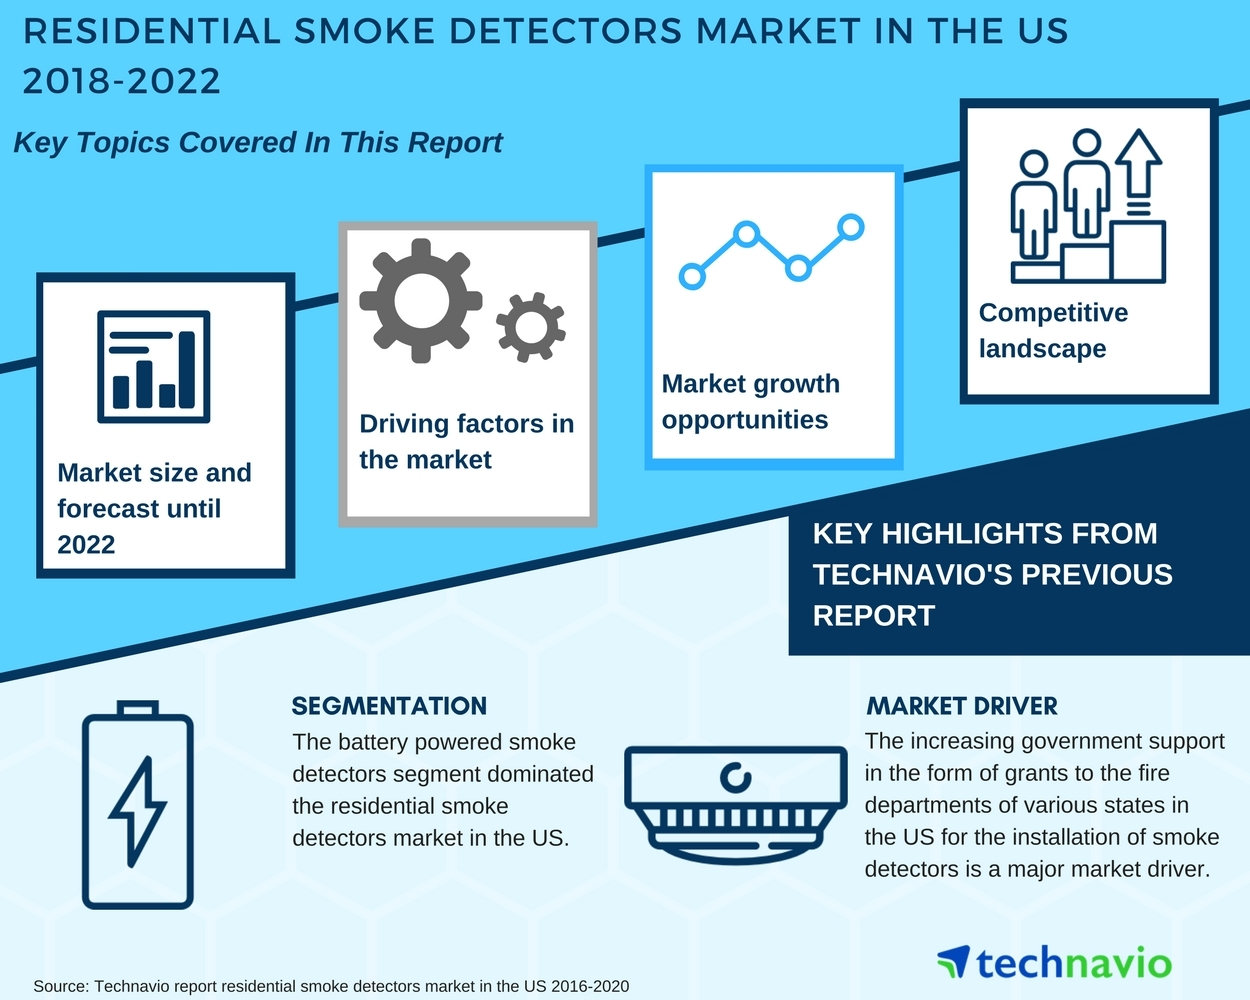 Residential Smoke Detectors Market In The Us Competitive